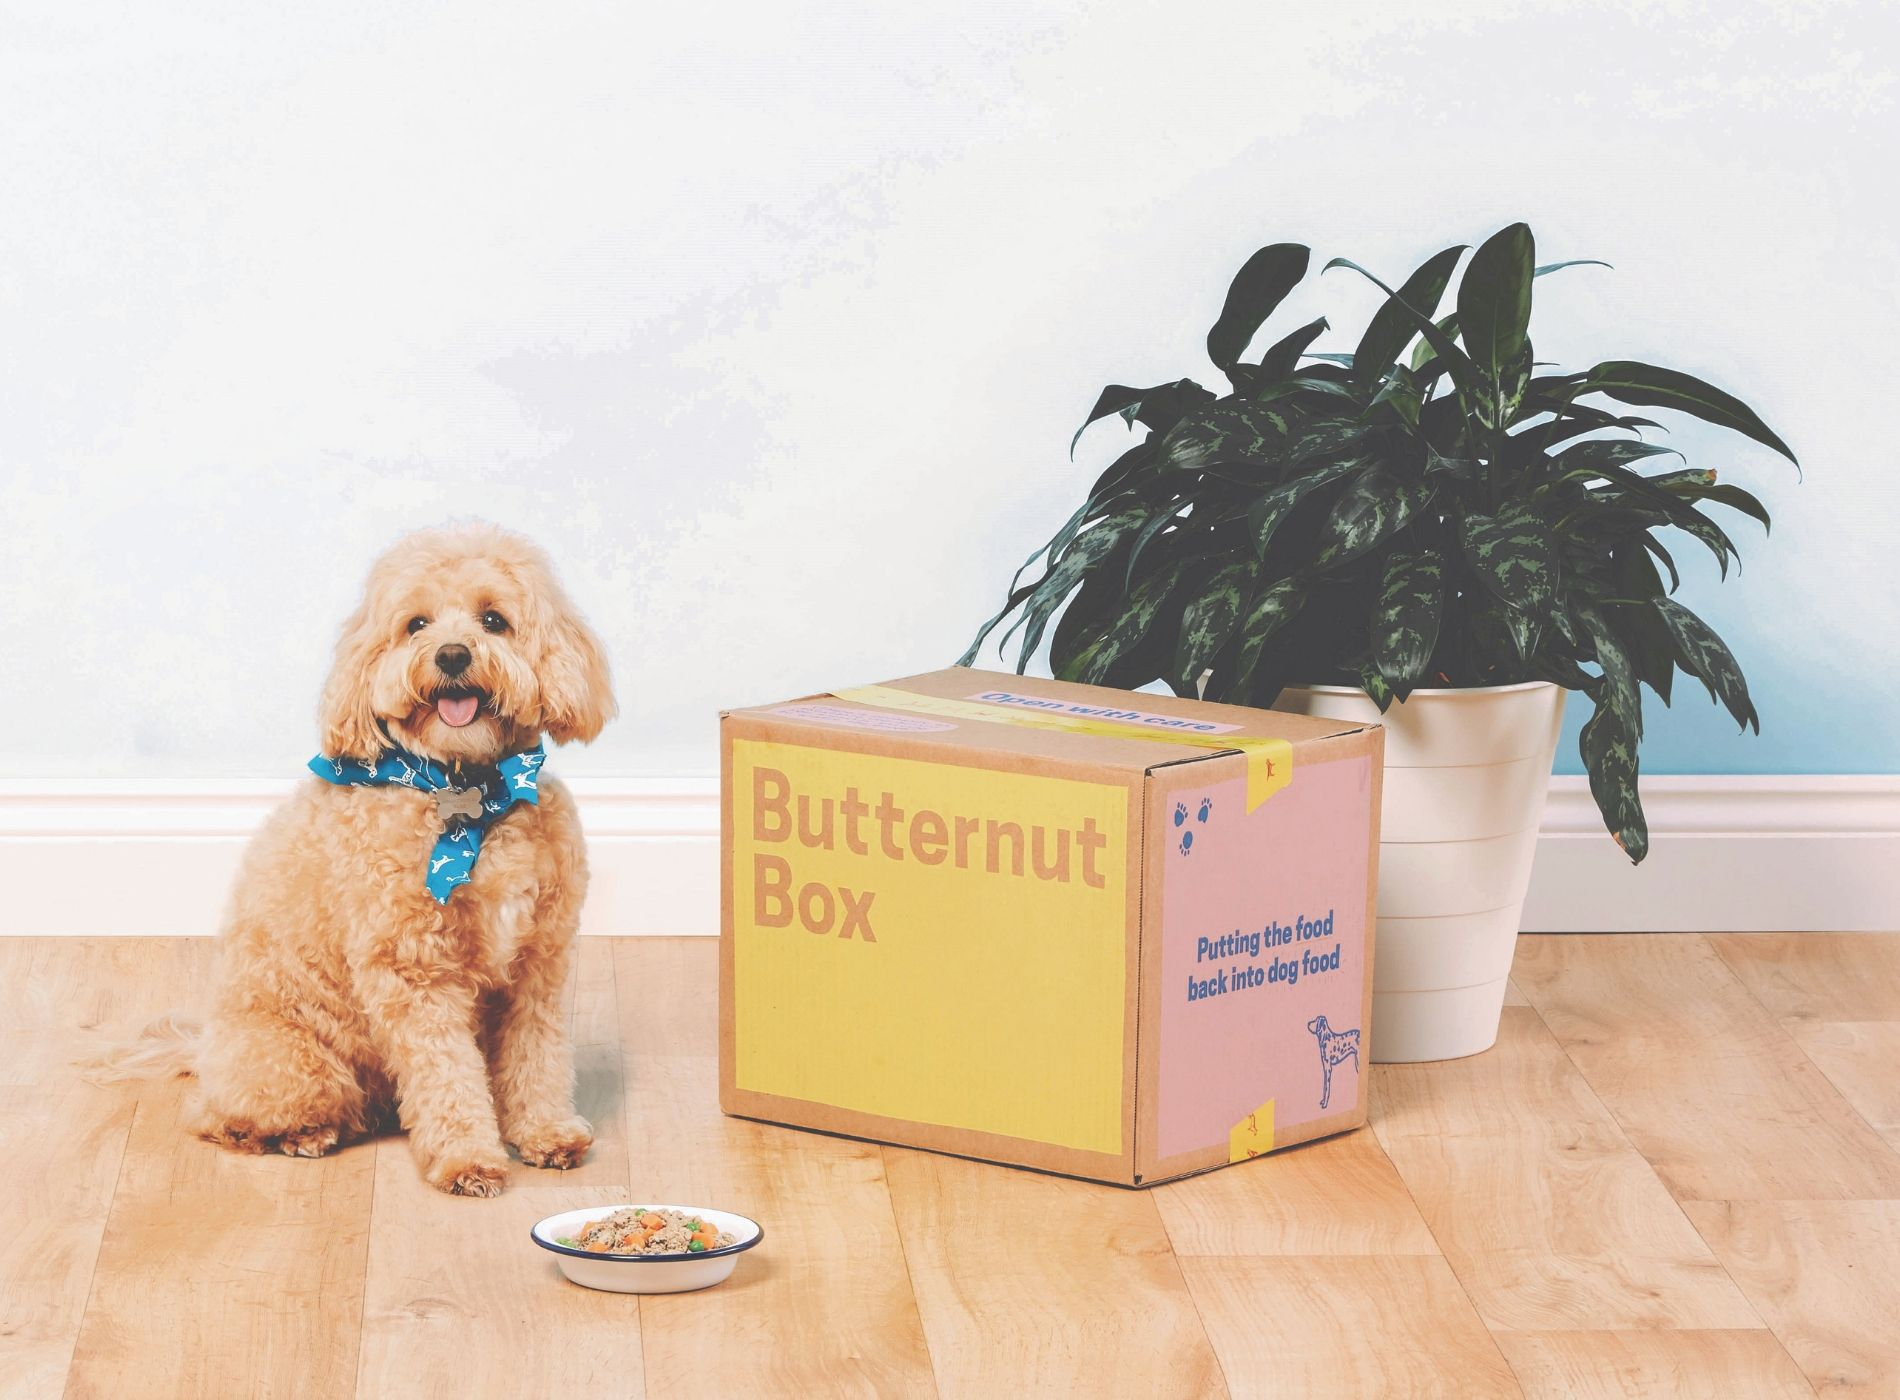 Dog beside a Butternut box